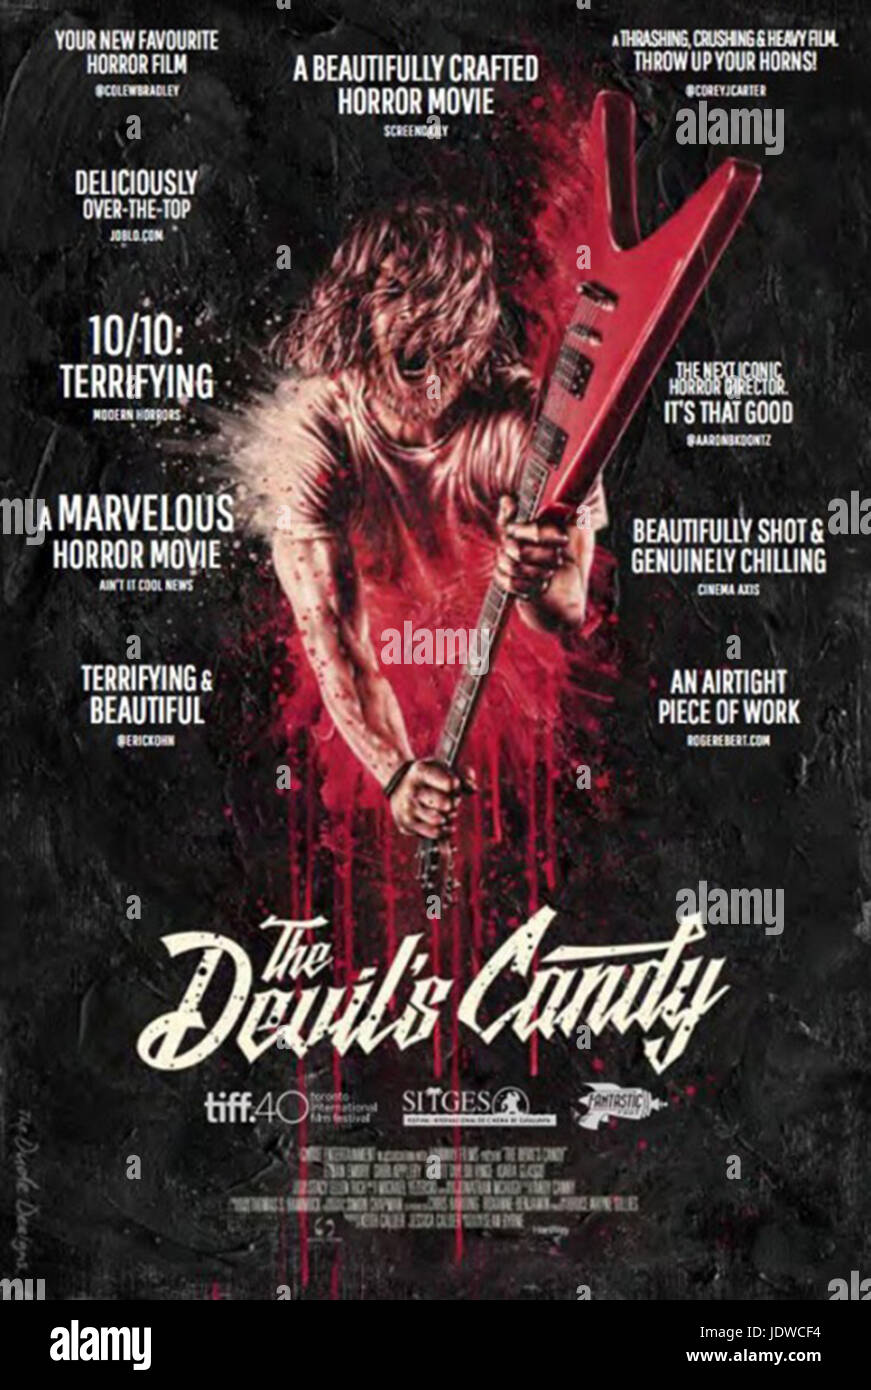 El Devil's candy (2015) Juan Byrne (dir) snoot entertainment/colección moviestore ltd Imagen De Stock